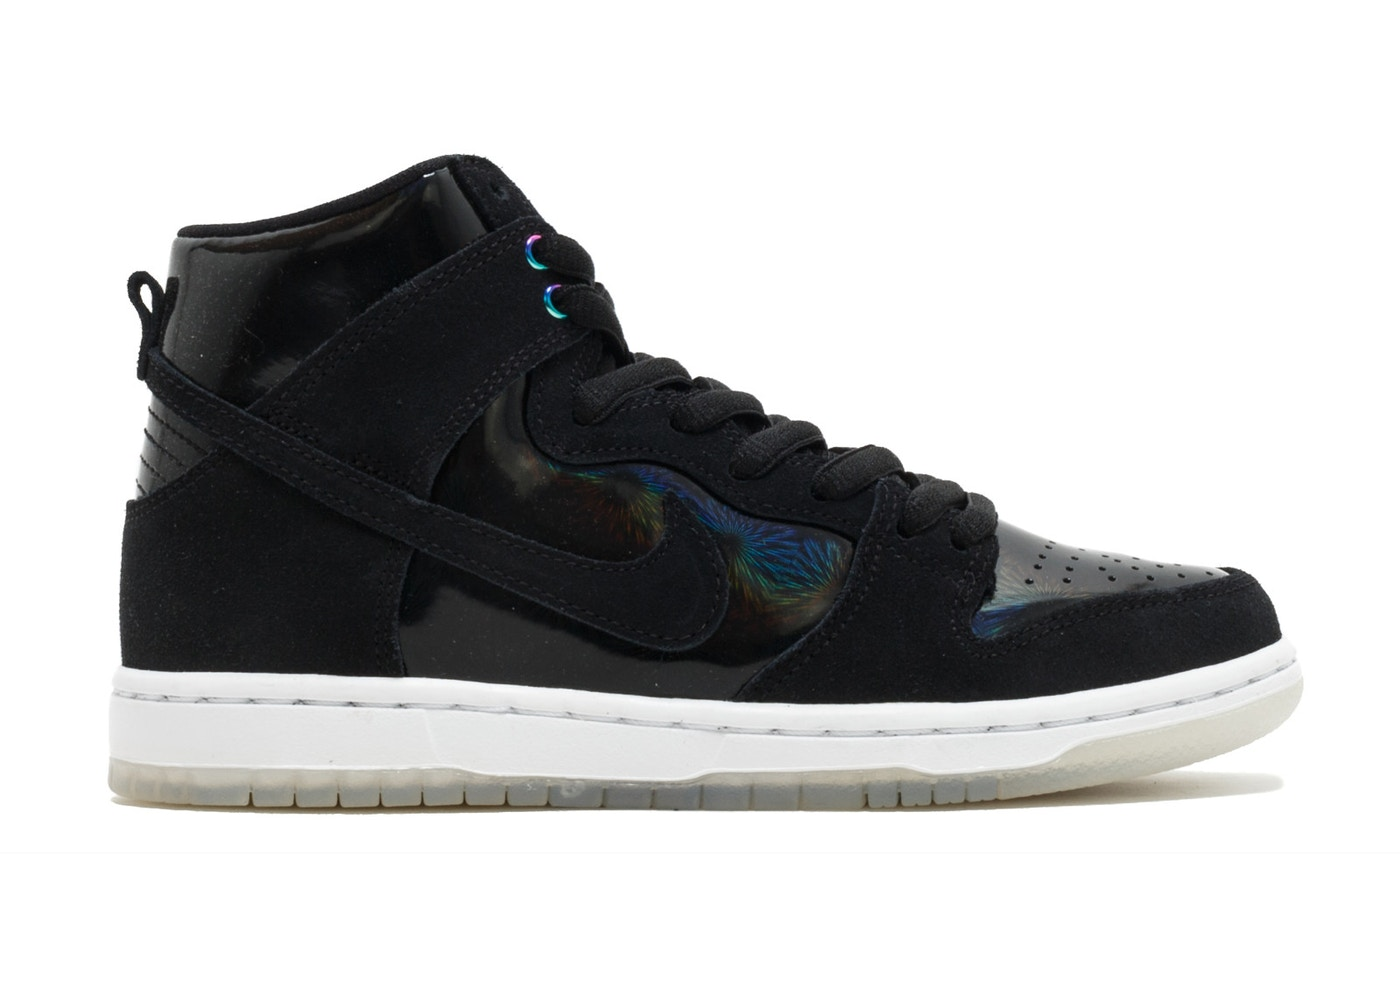 Contable Tía Manifiesto  Nike Sb Zoom Dunk High Pro Black/Black-White-Clear - 854851-001